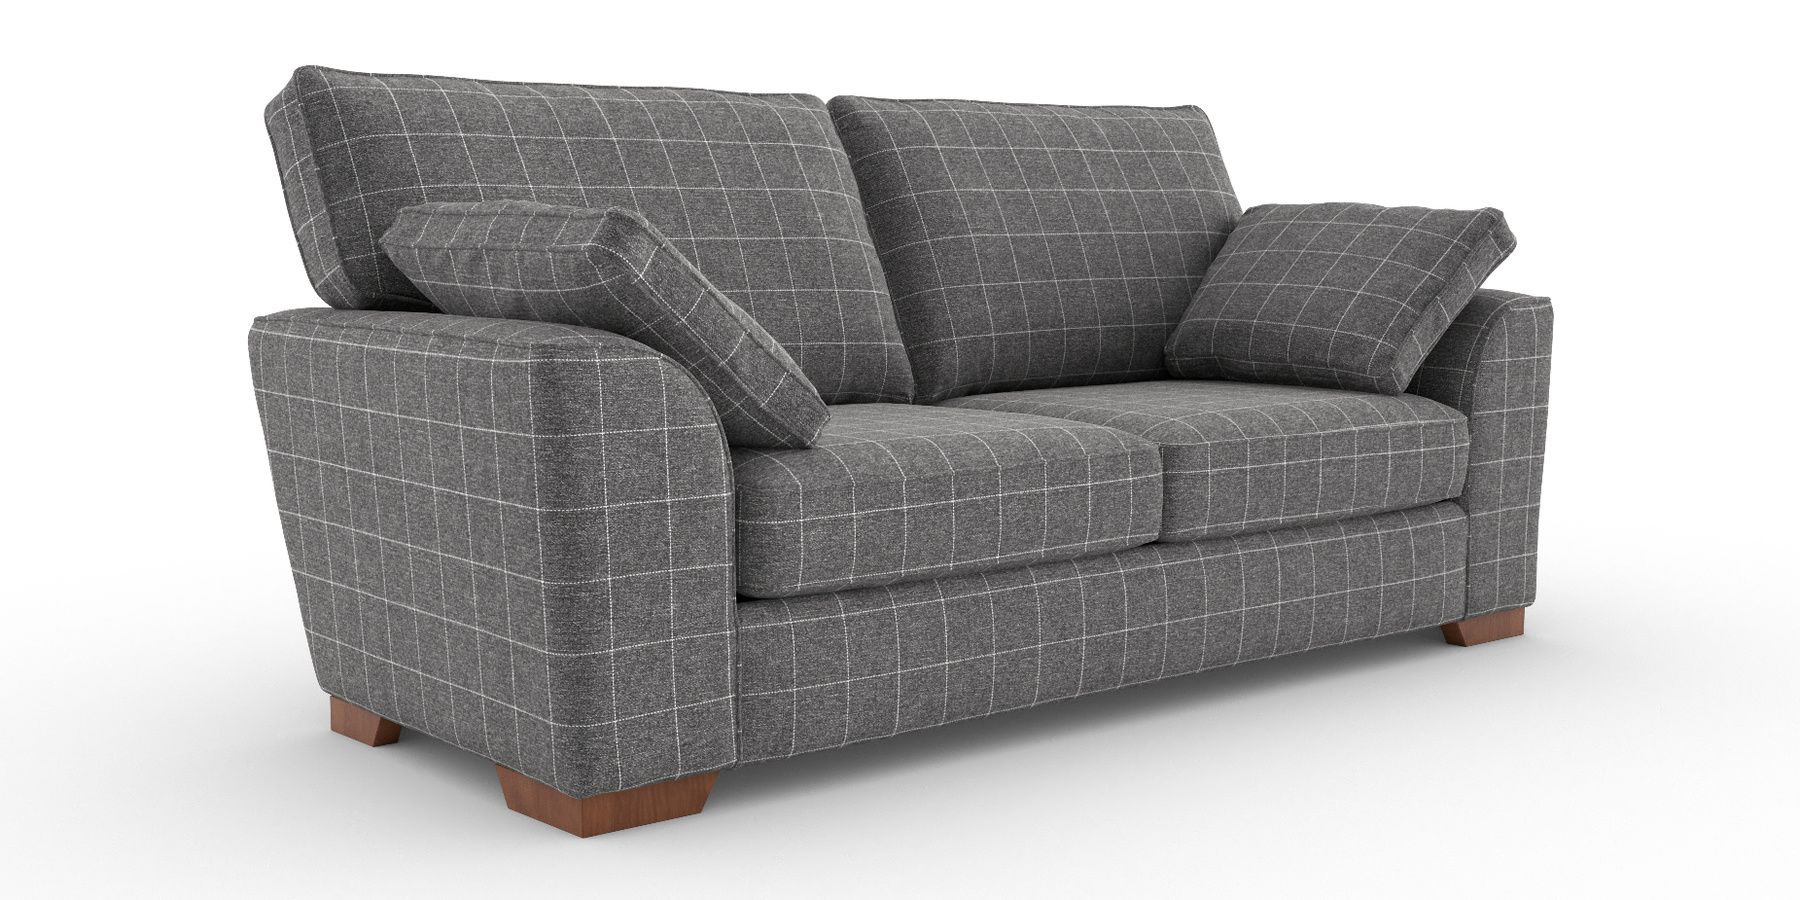 Buy Stamford Large Sofa 3 Seats Tweedy Check Lawson Mid Grey Large Square Angle Standard From The Next Uk Online Shop Large Sofa Sofa Love Seat